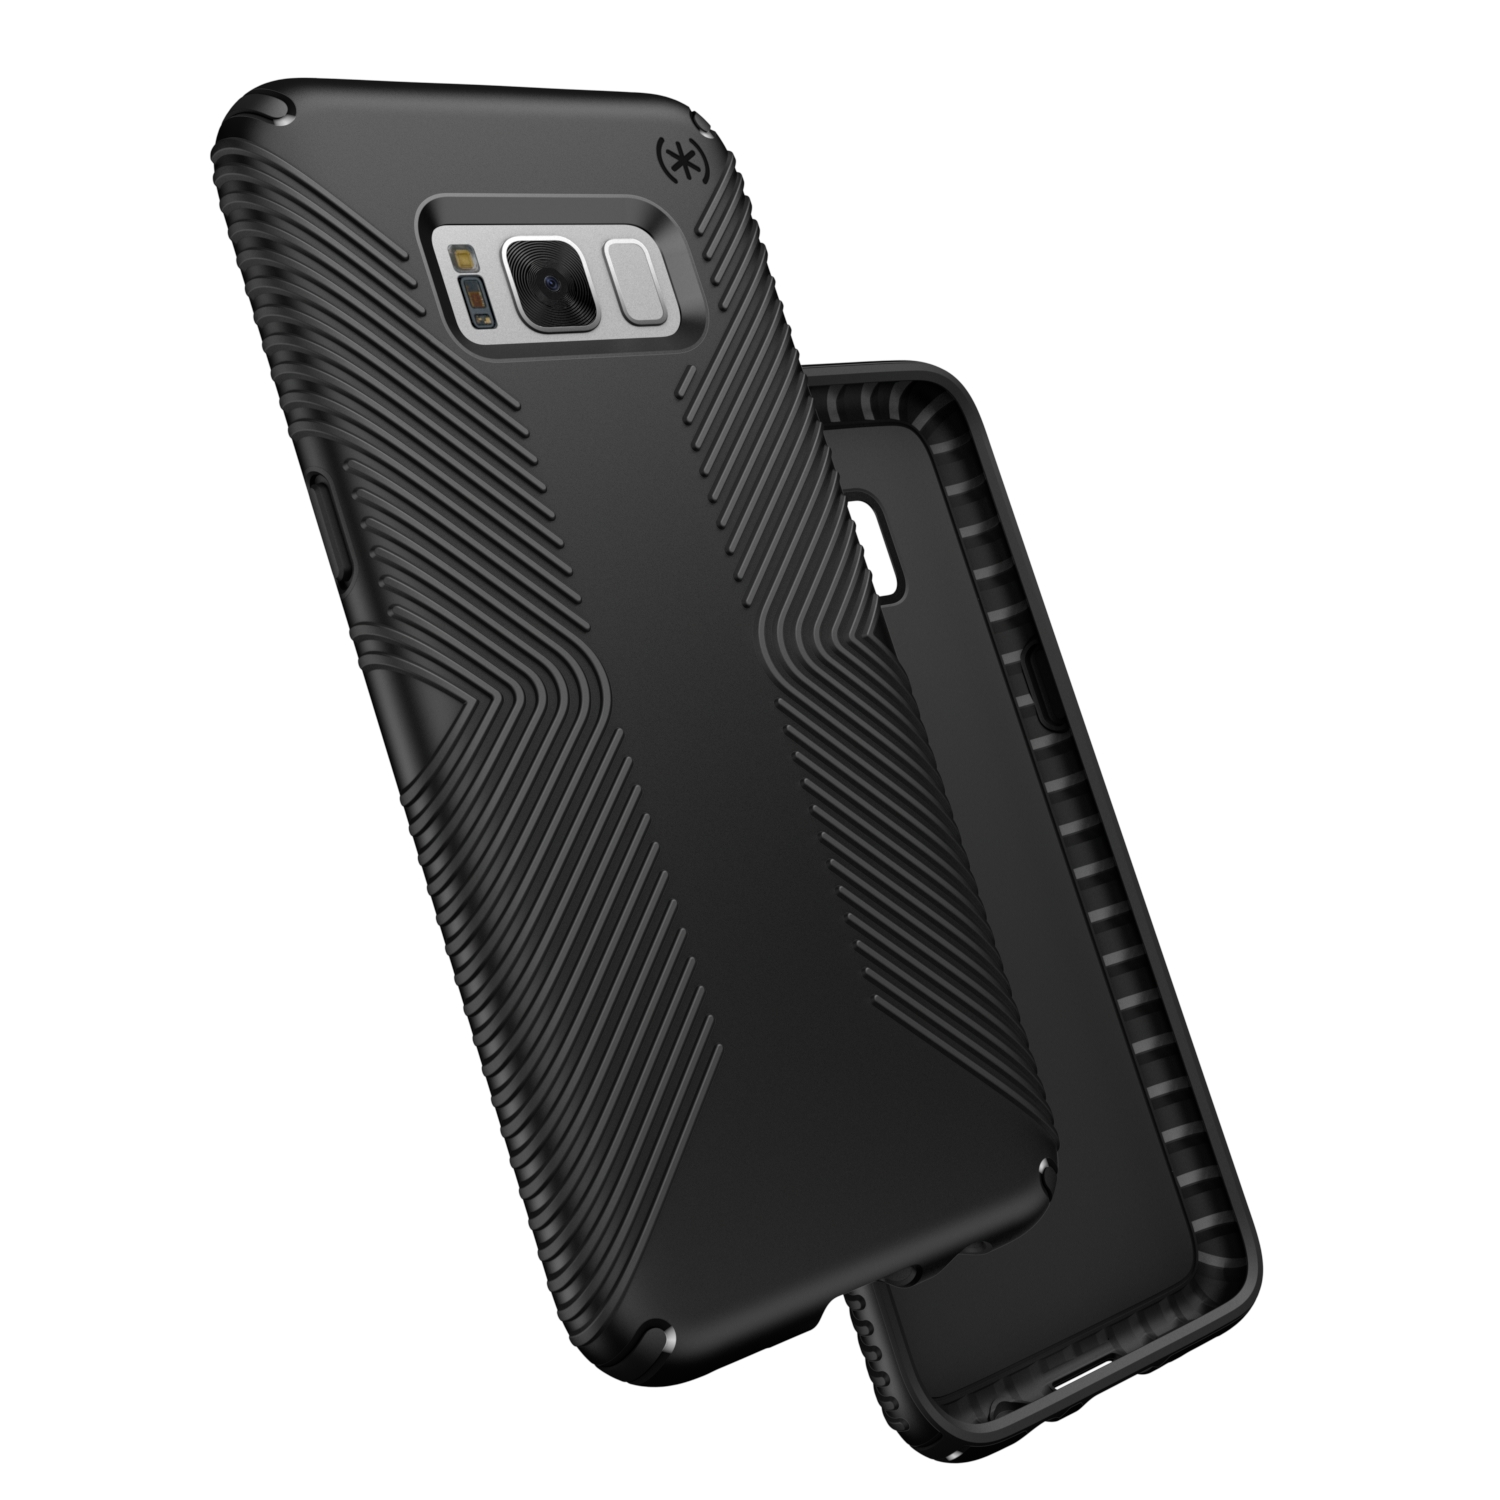 Search and compare best prices of Speck Presidio Grip Samsung Galaxy S8 Plus Cases Black/Black in UK